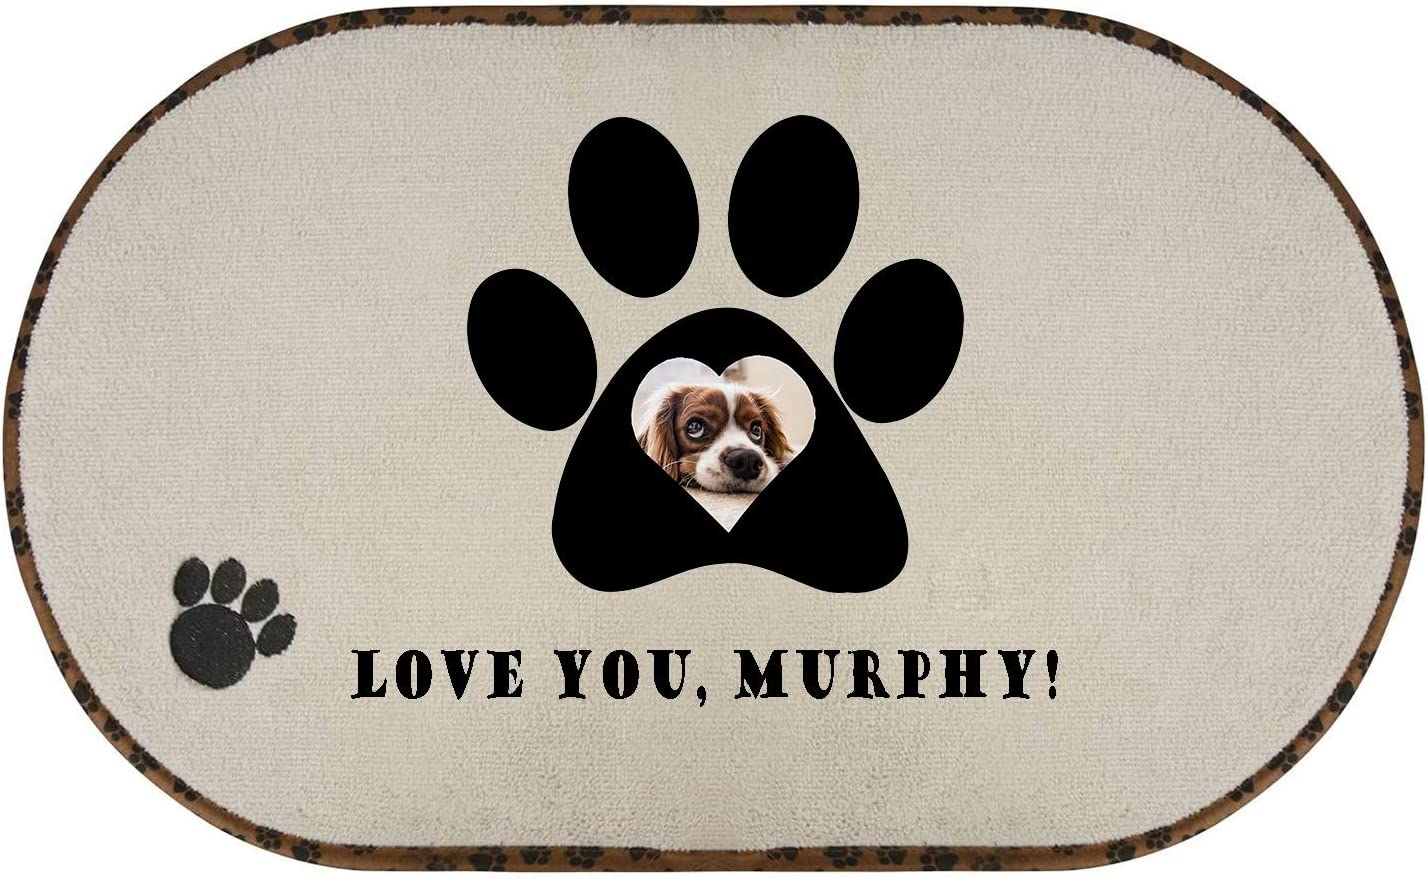 SETSBO Personalized Dog Mats for Food and Water, Non-Slip Custom Pet Feeding Mat with Photo/Text